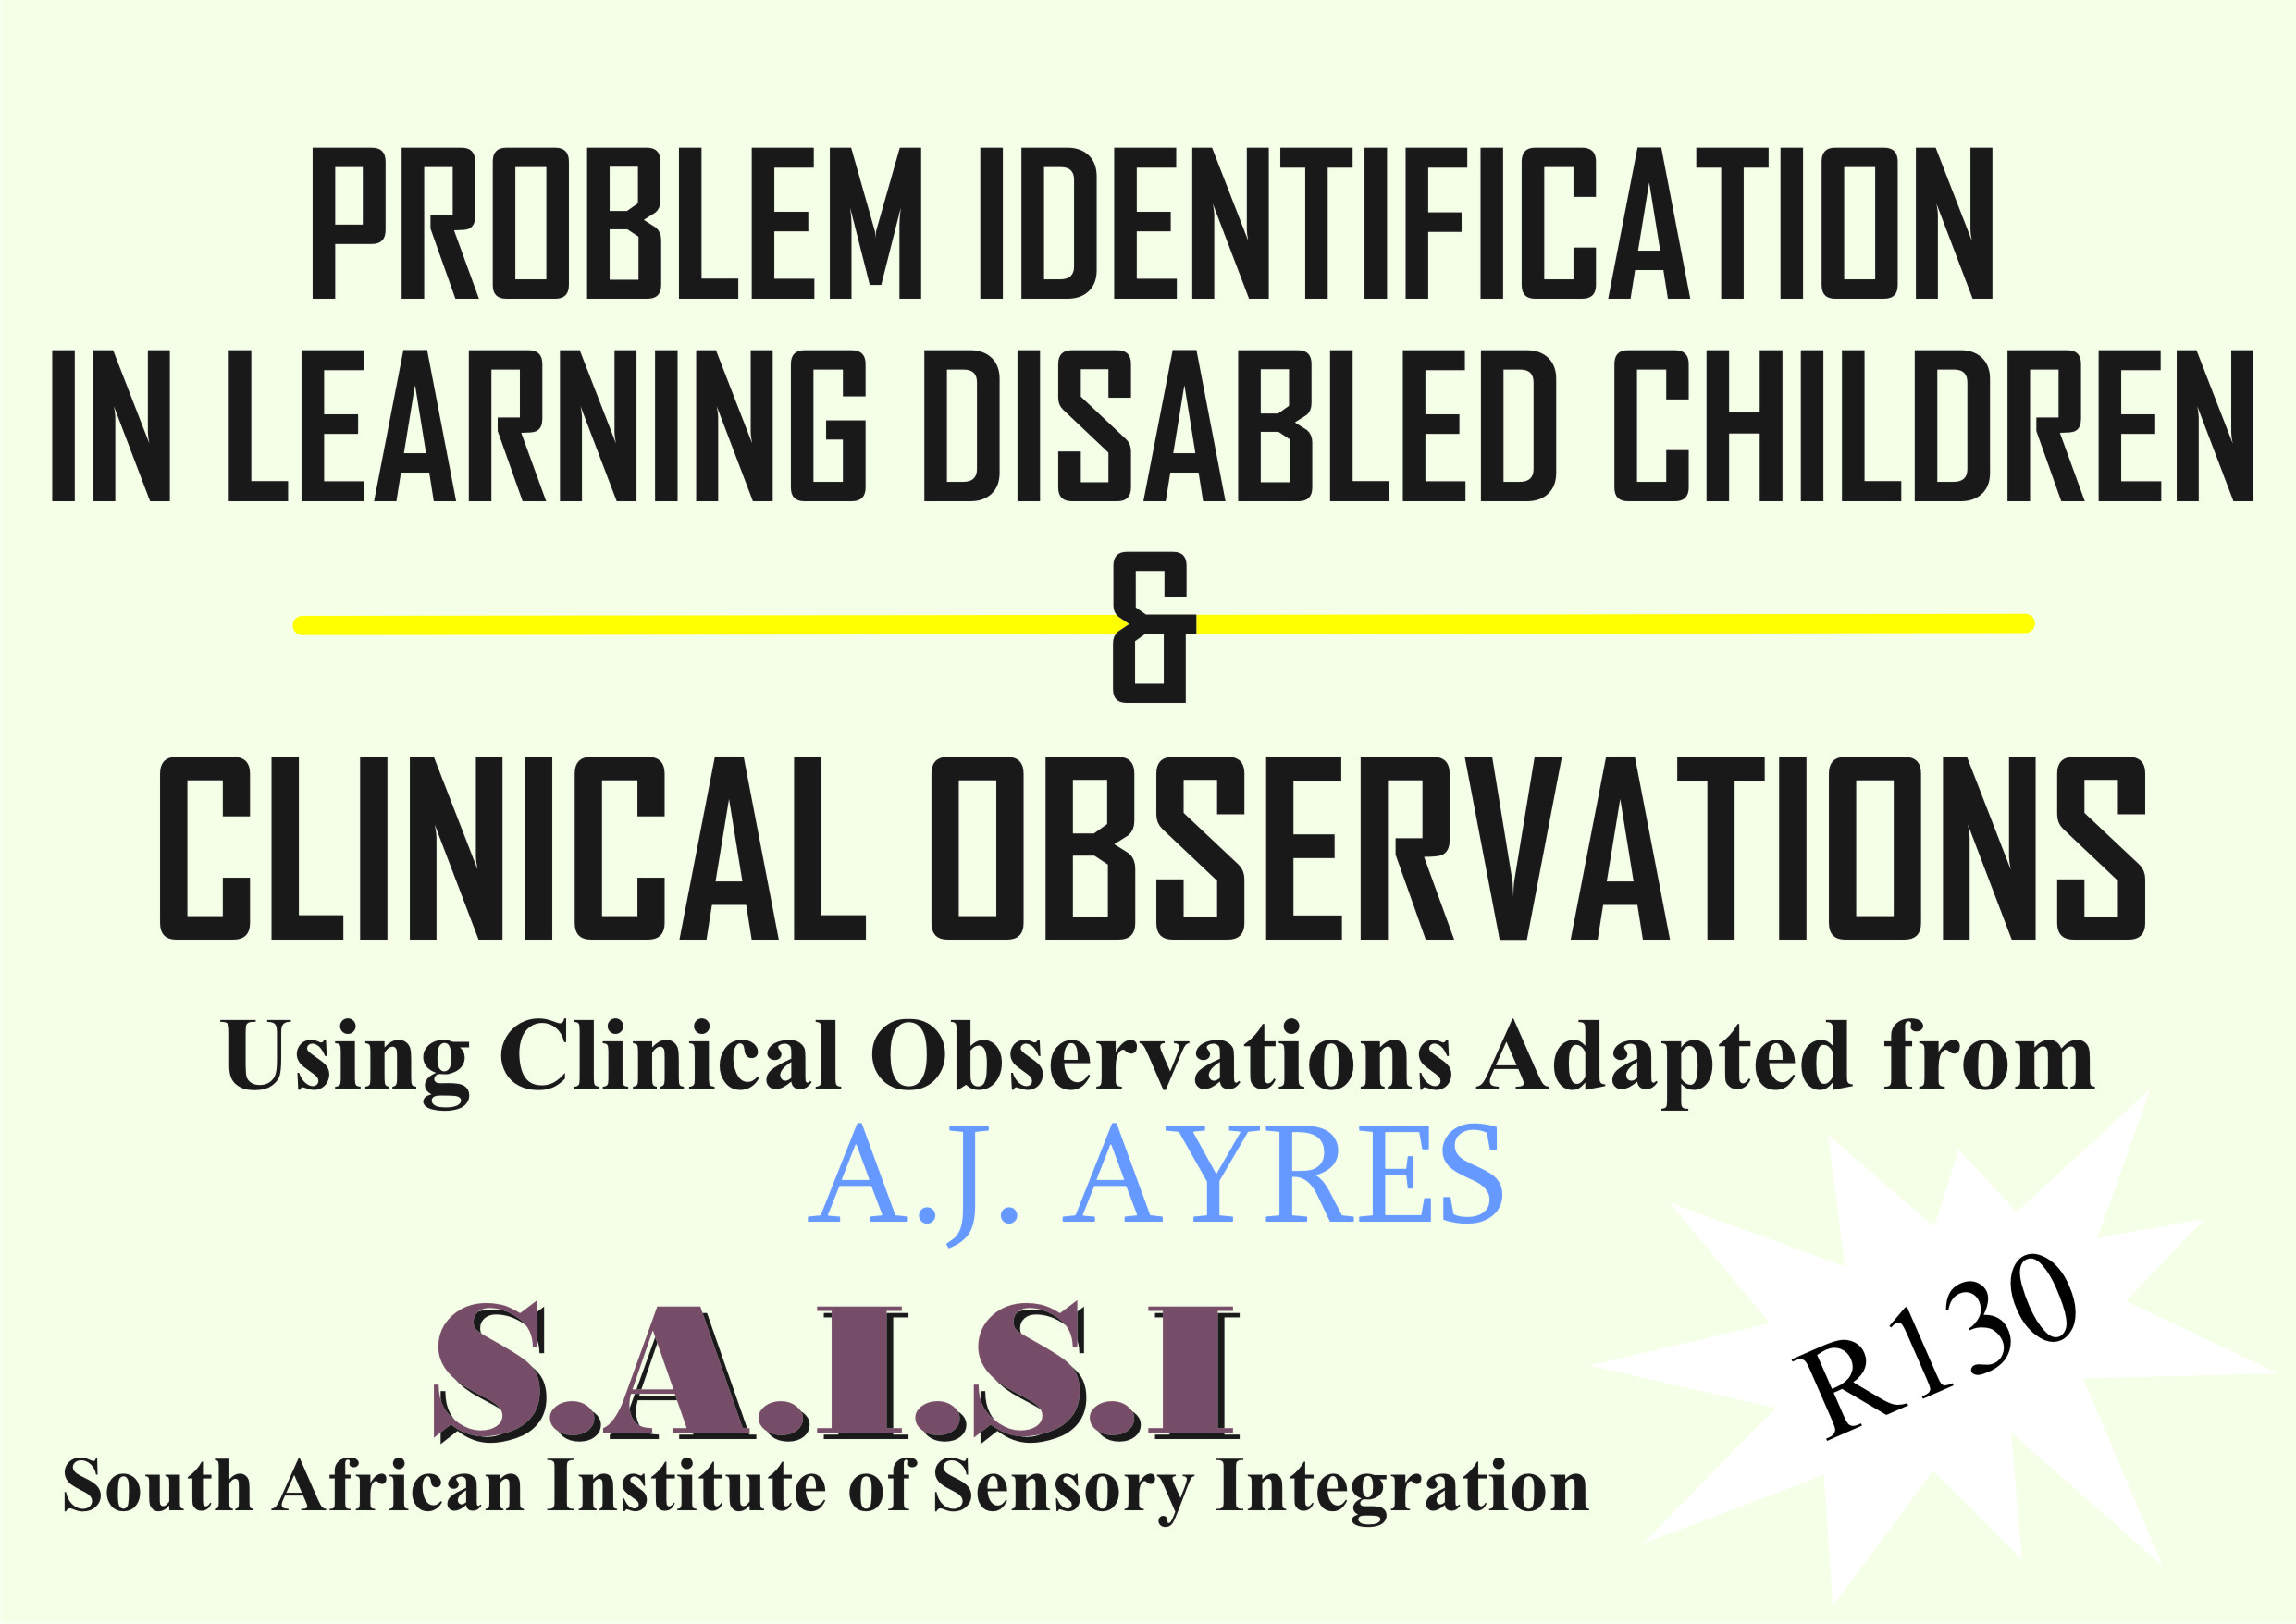 Clinical Observations - University Students - Only